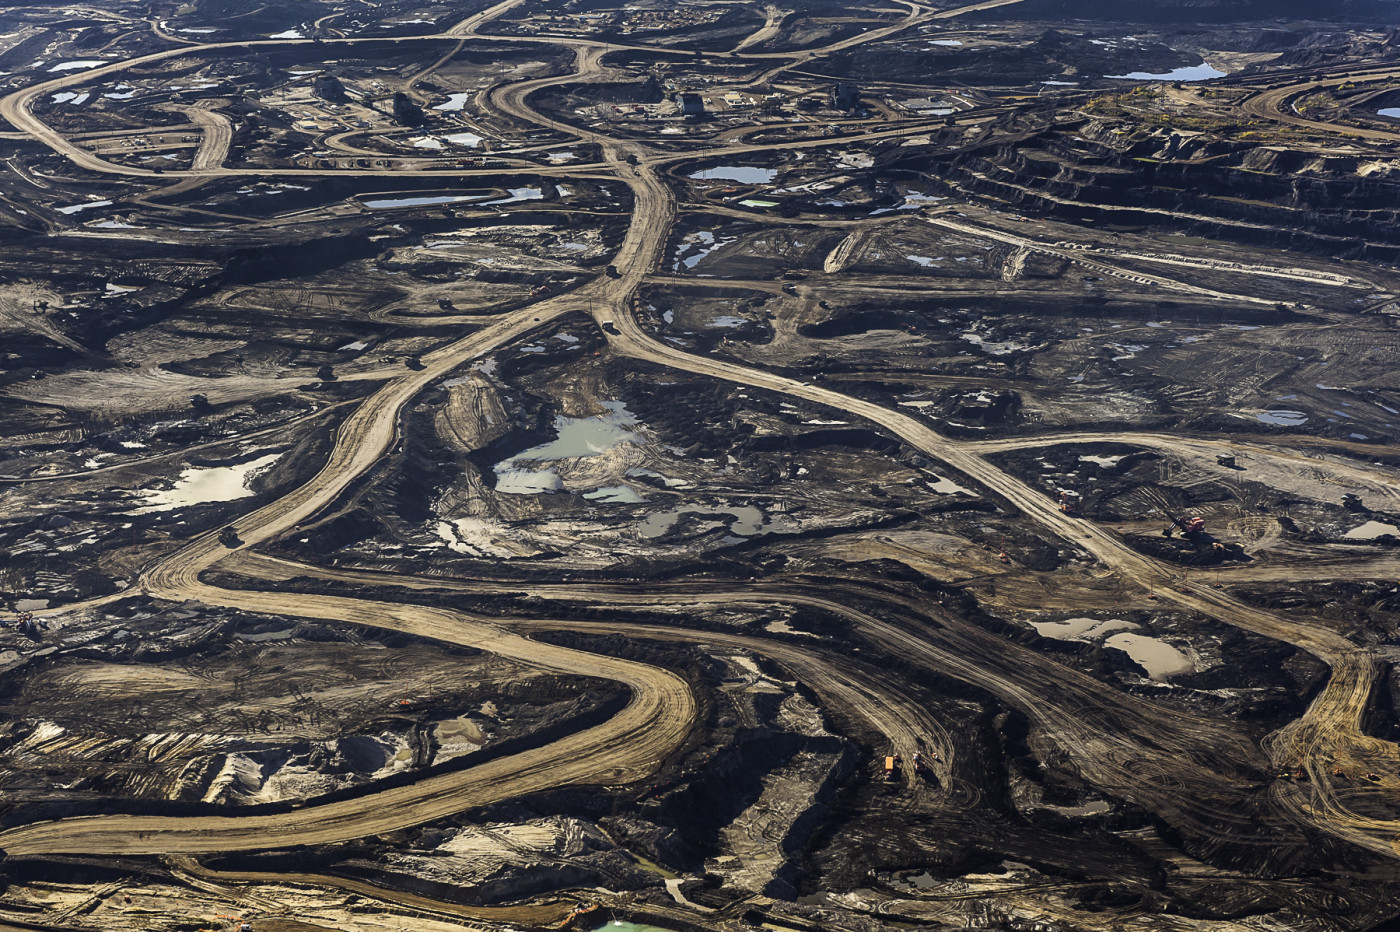 Tar Sands Mining photo by Garth Lenz